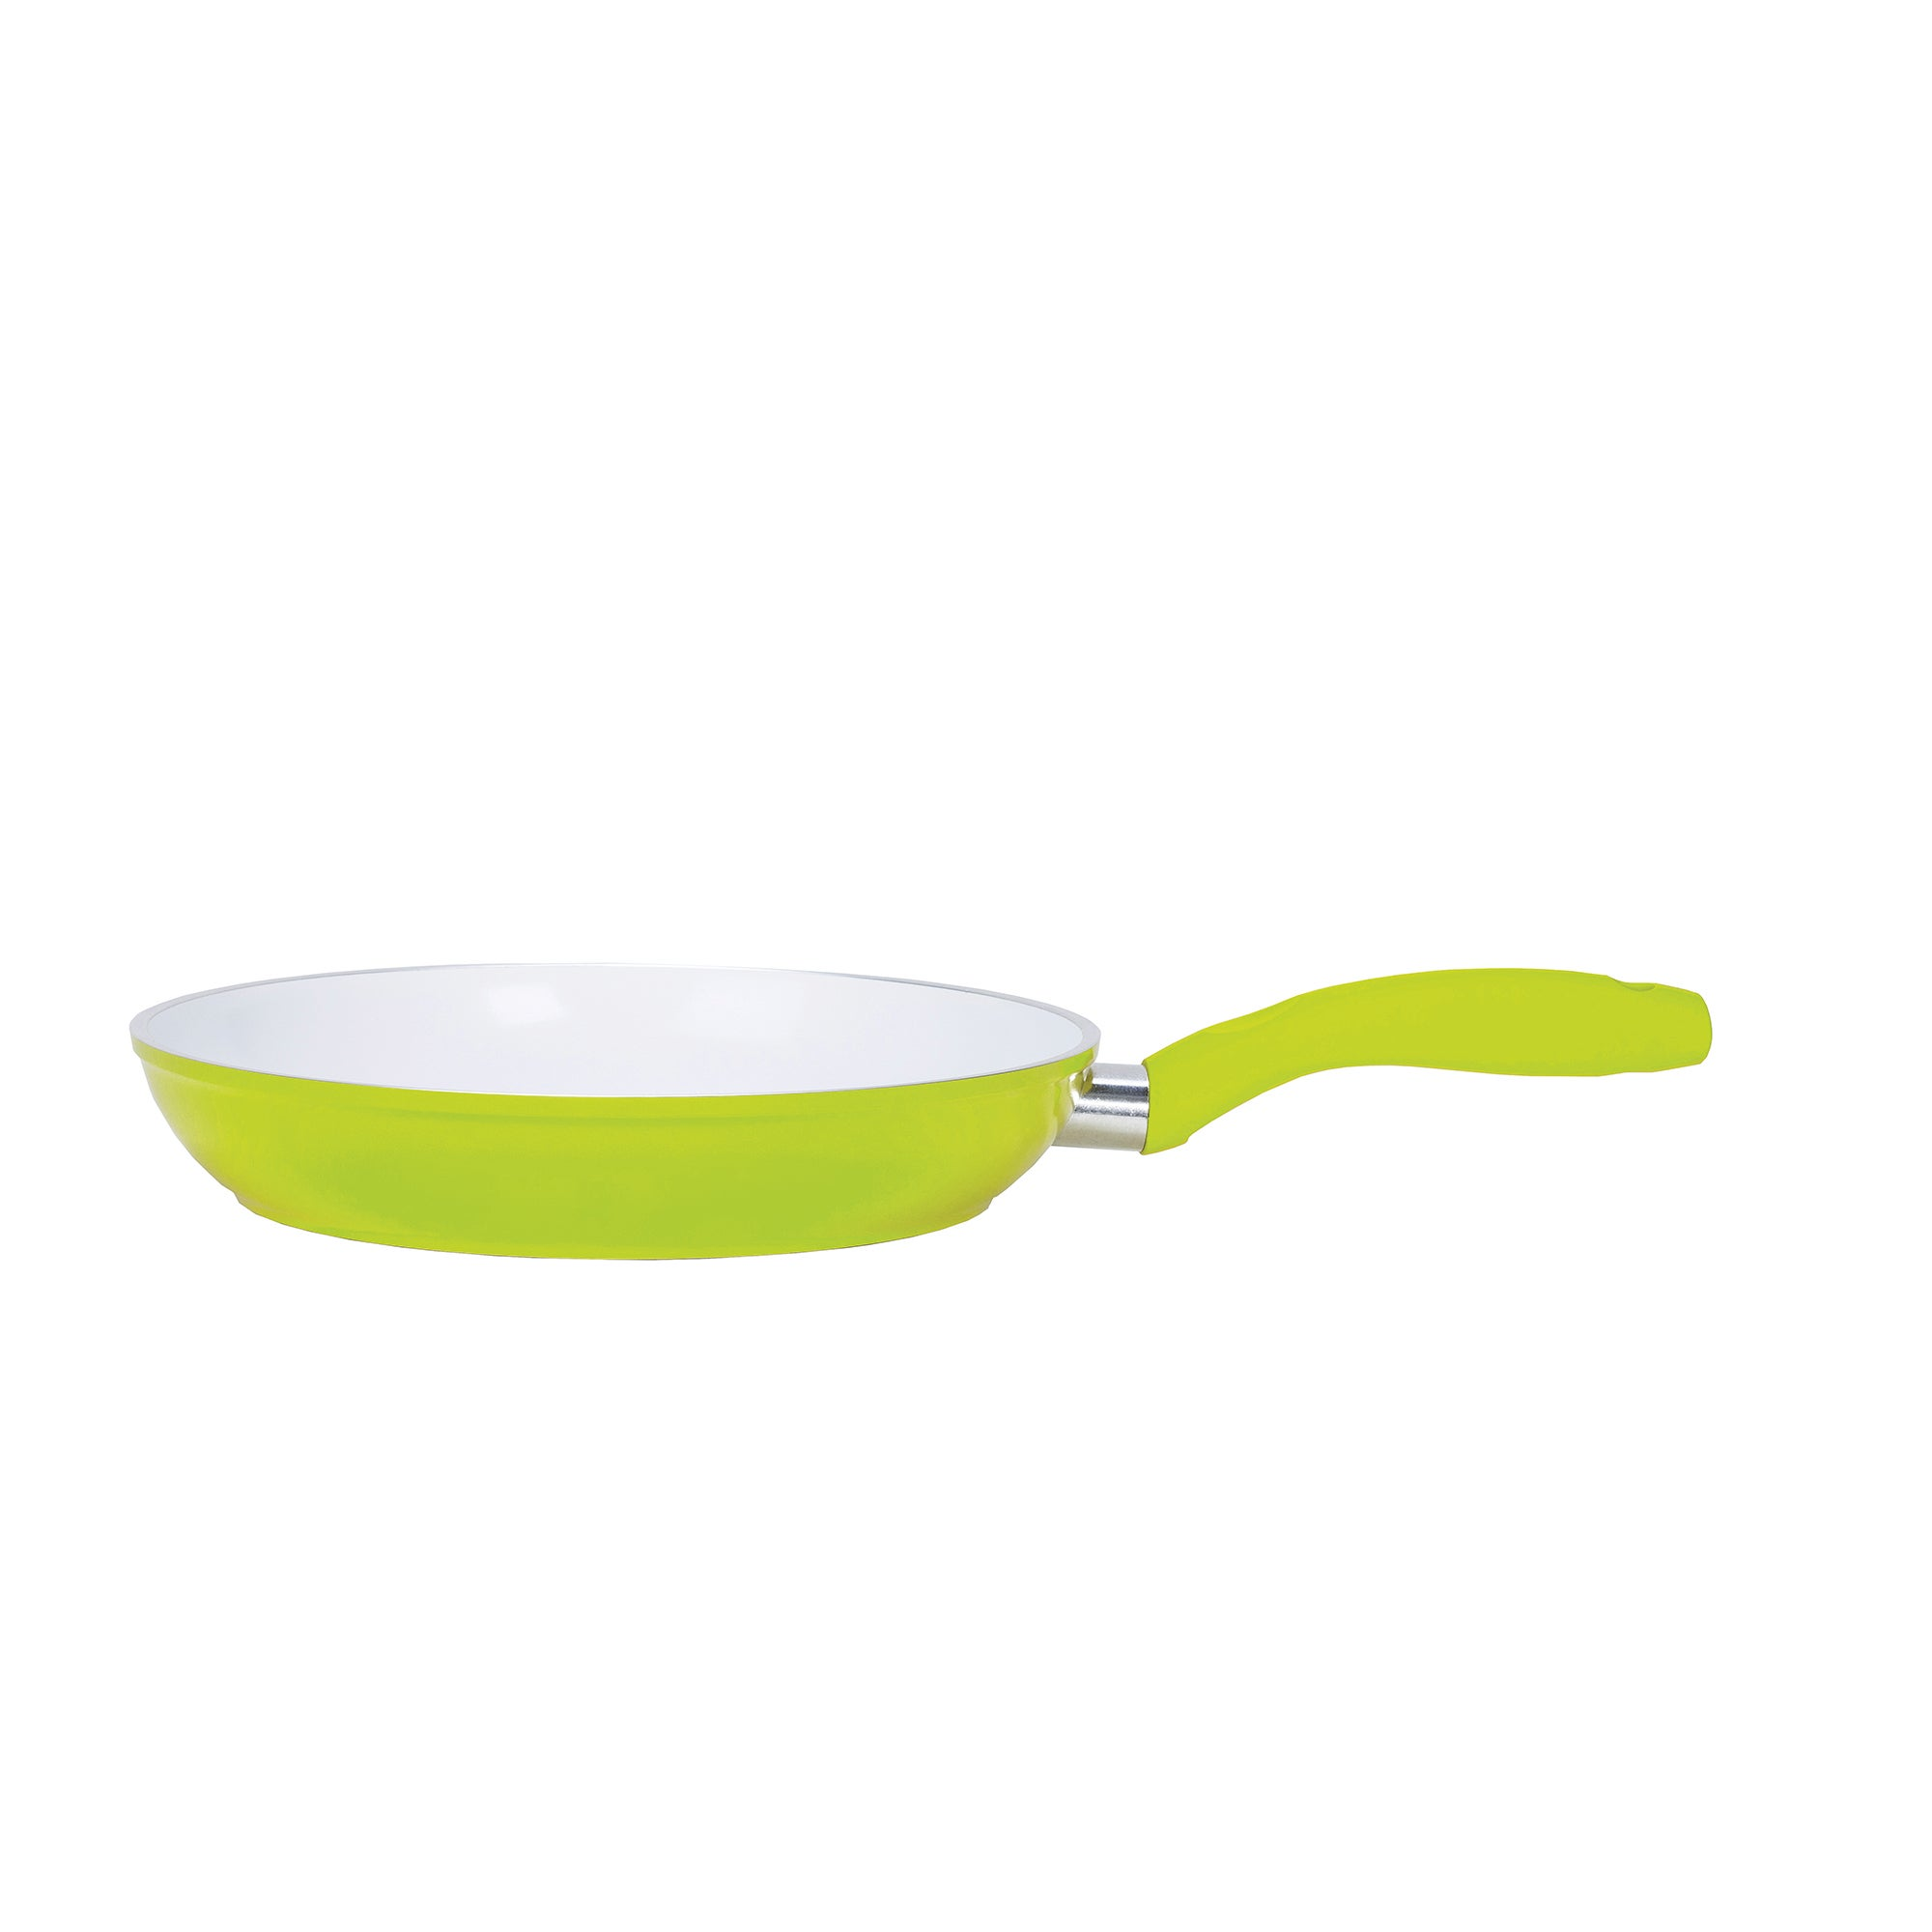 Photo of Jml ceracraft green 28cm frying pan green